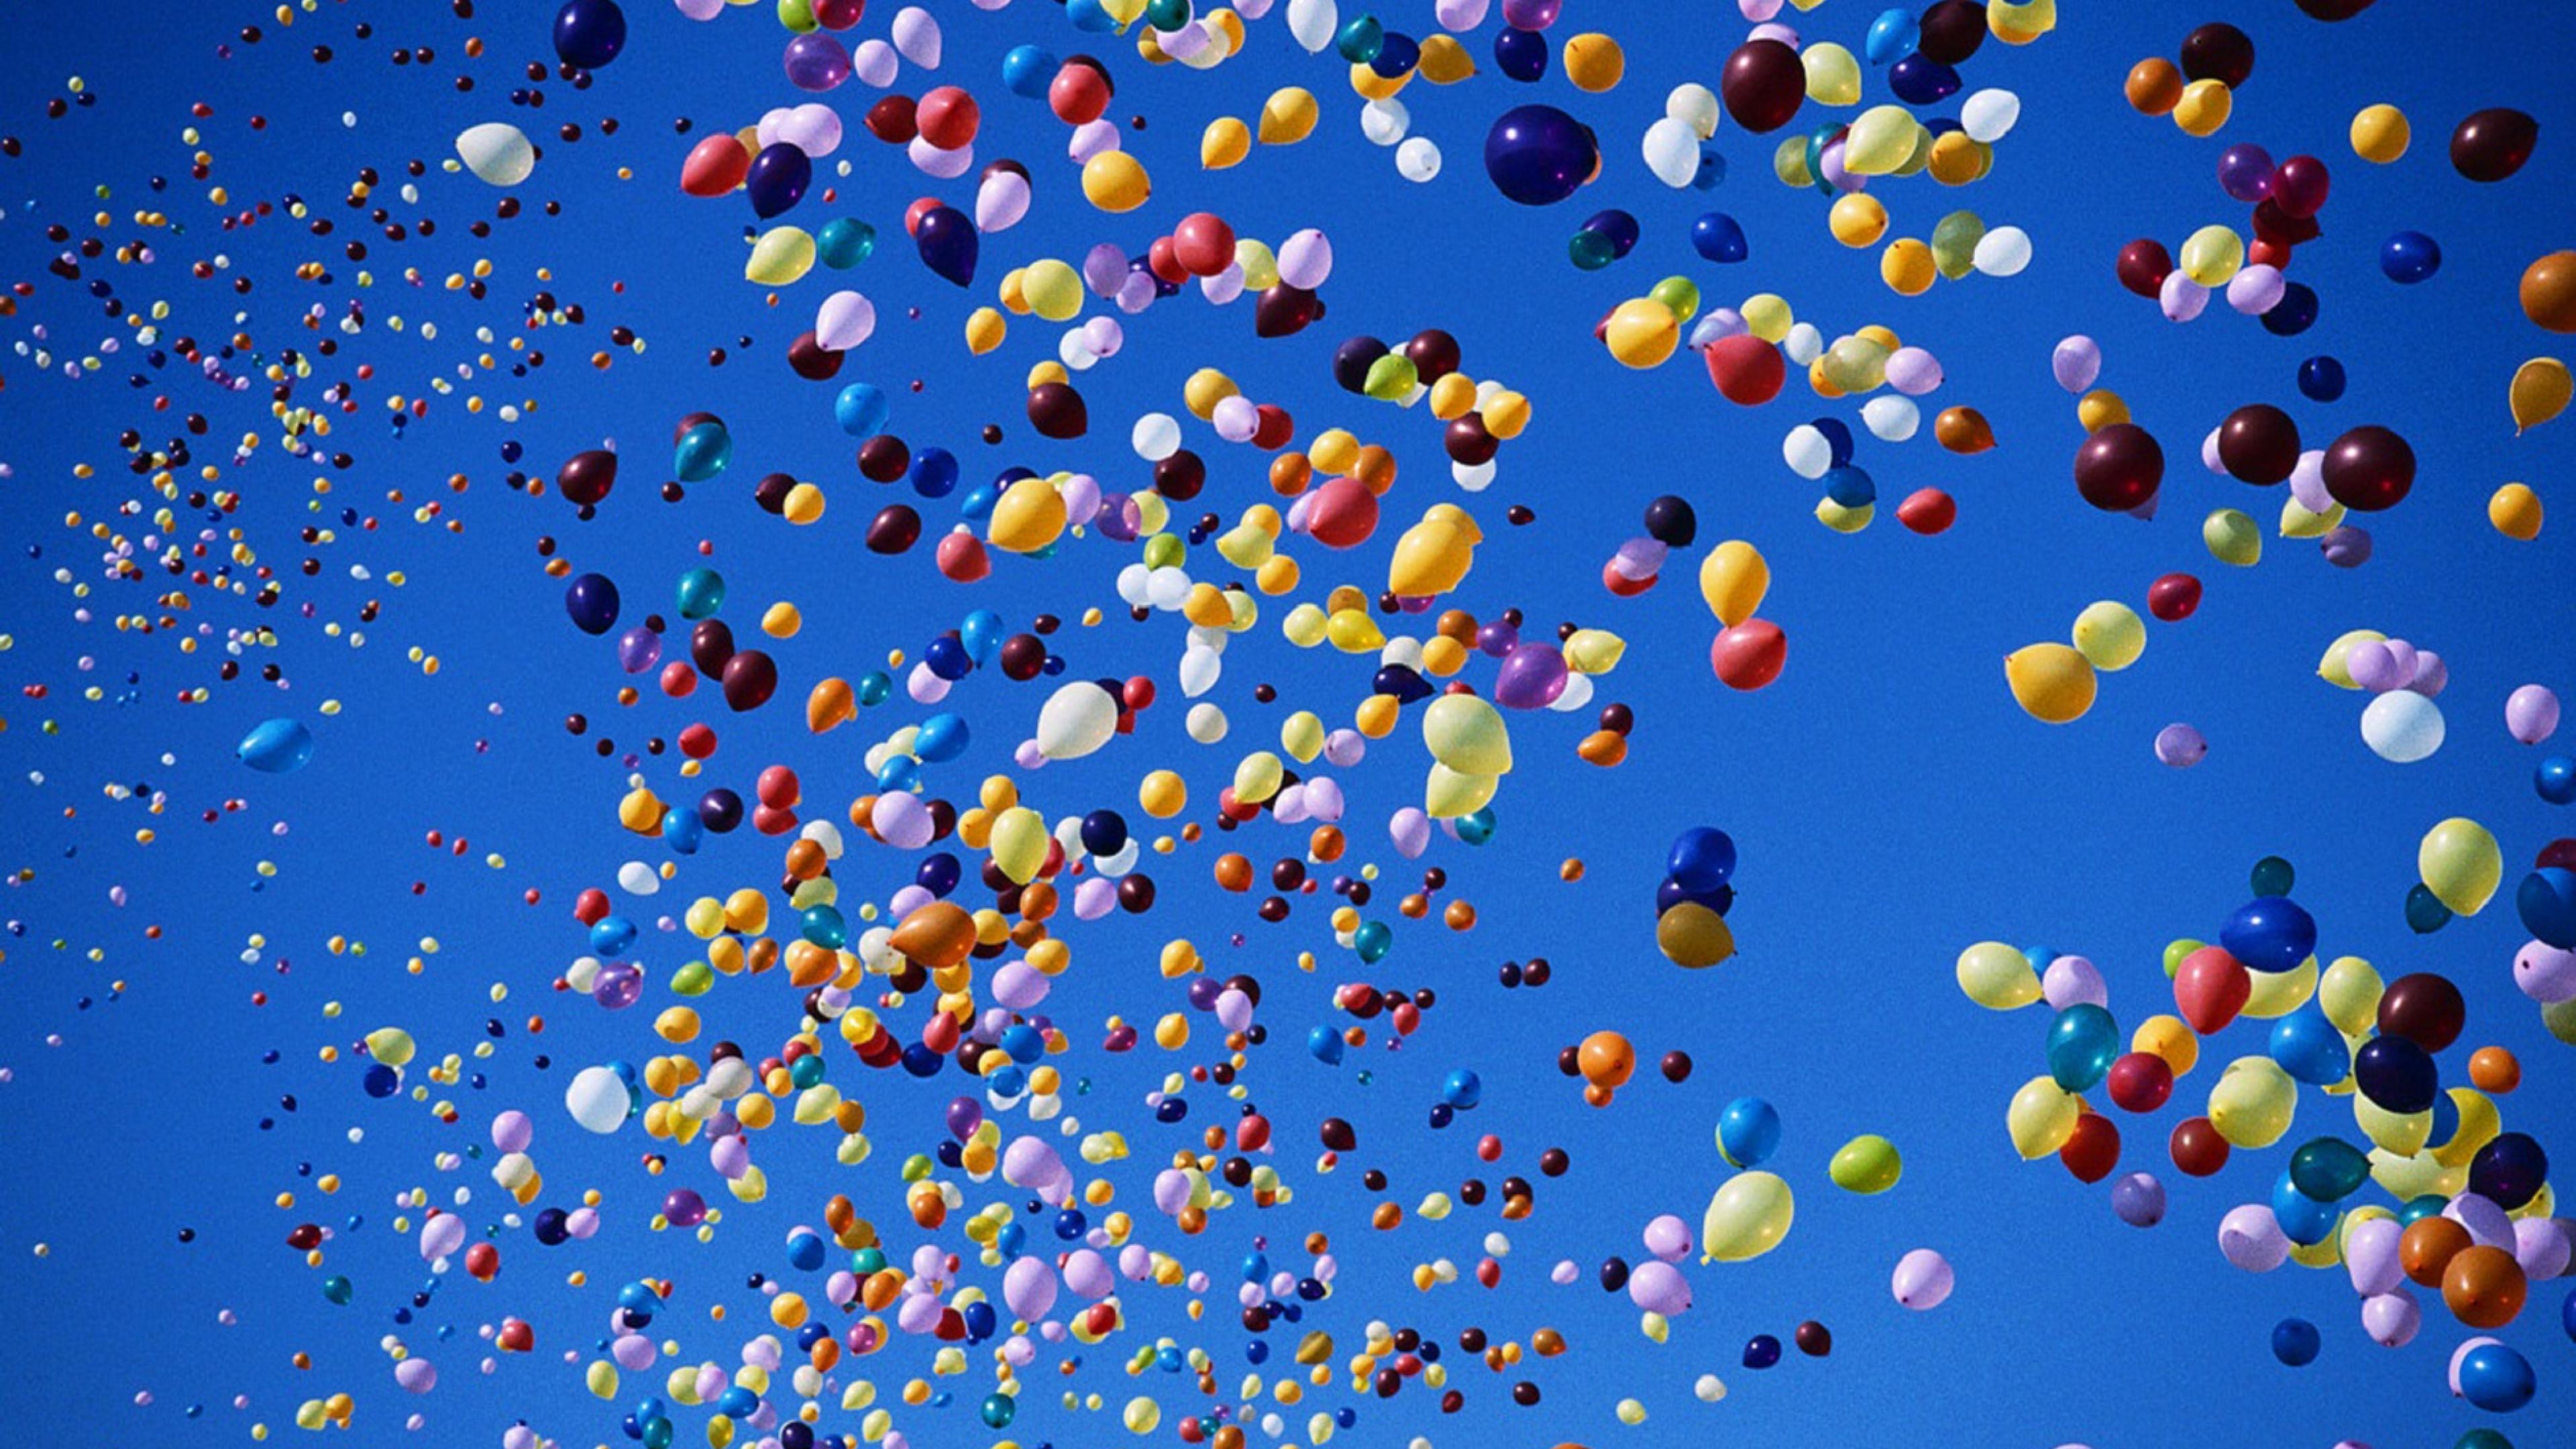 sky_balloons_colorful_stuff_ultra_3840x2160_hd-wallpaper-347029[1]